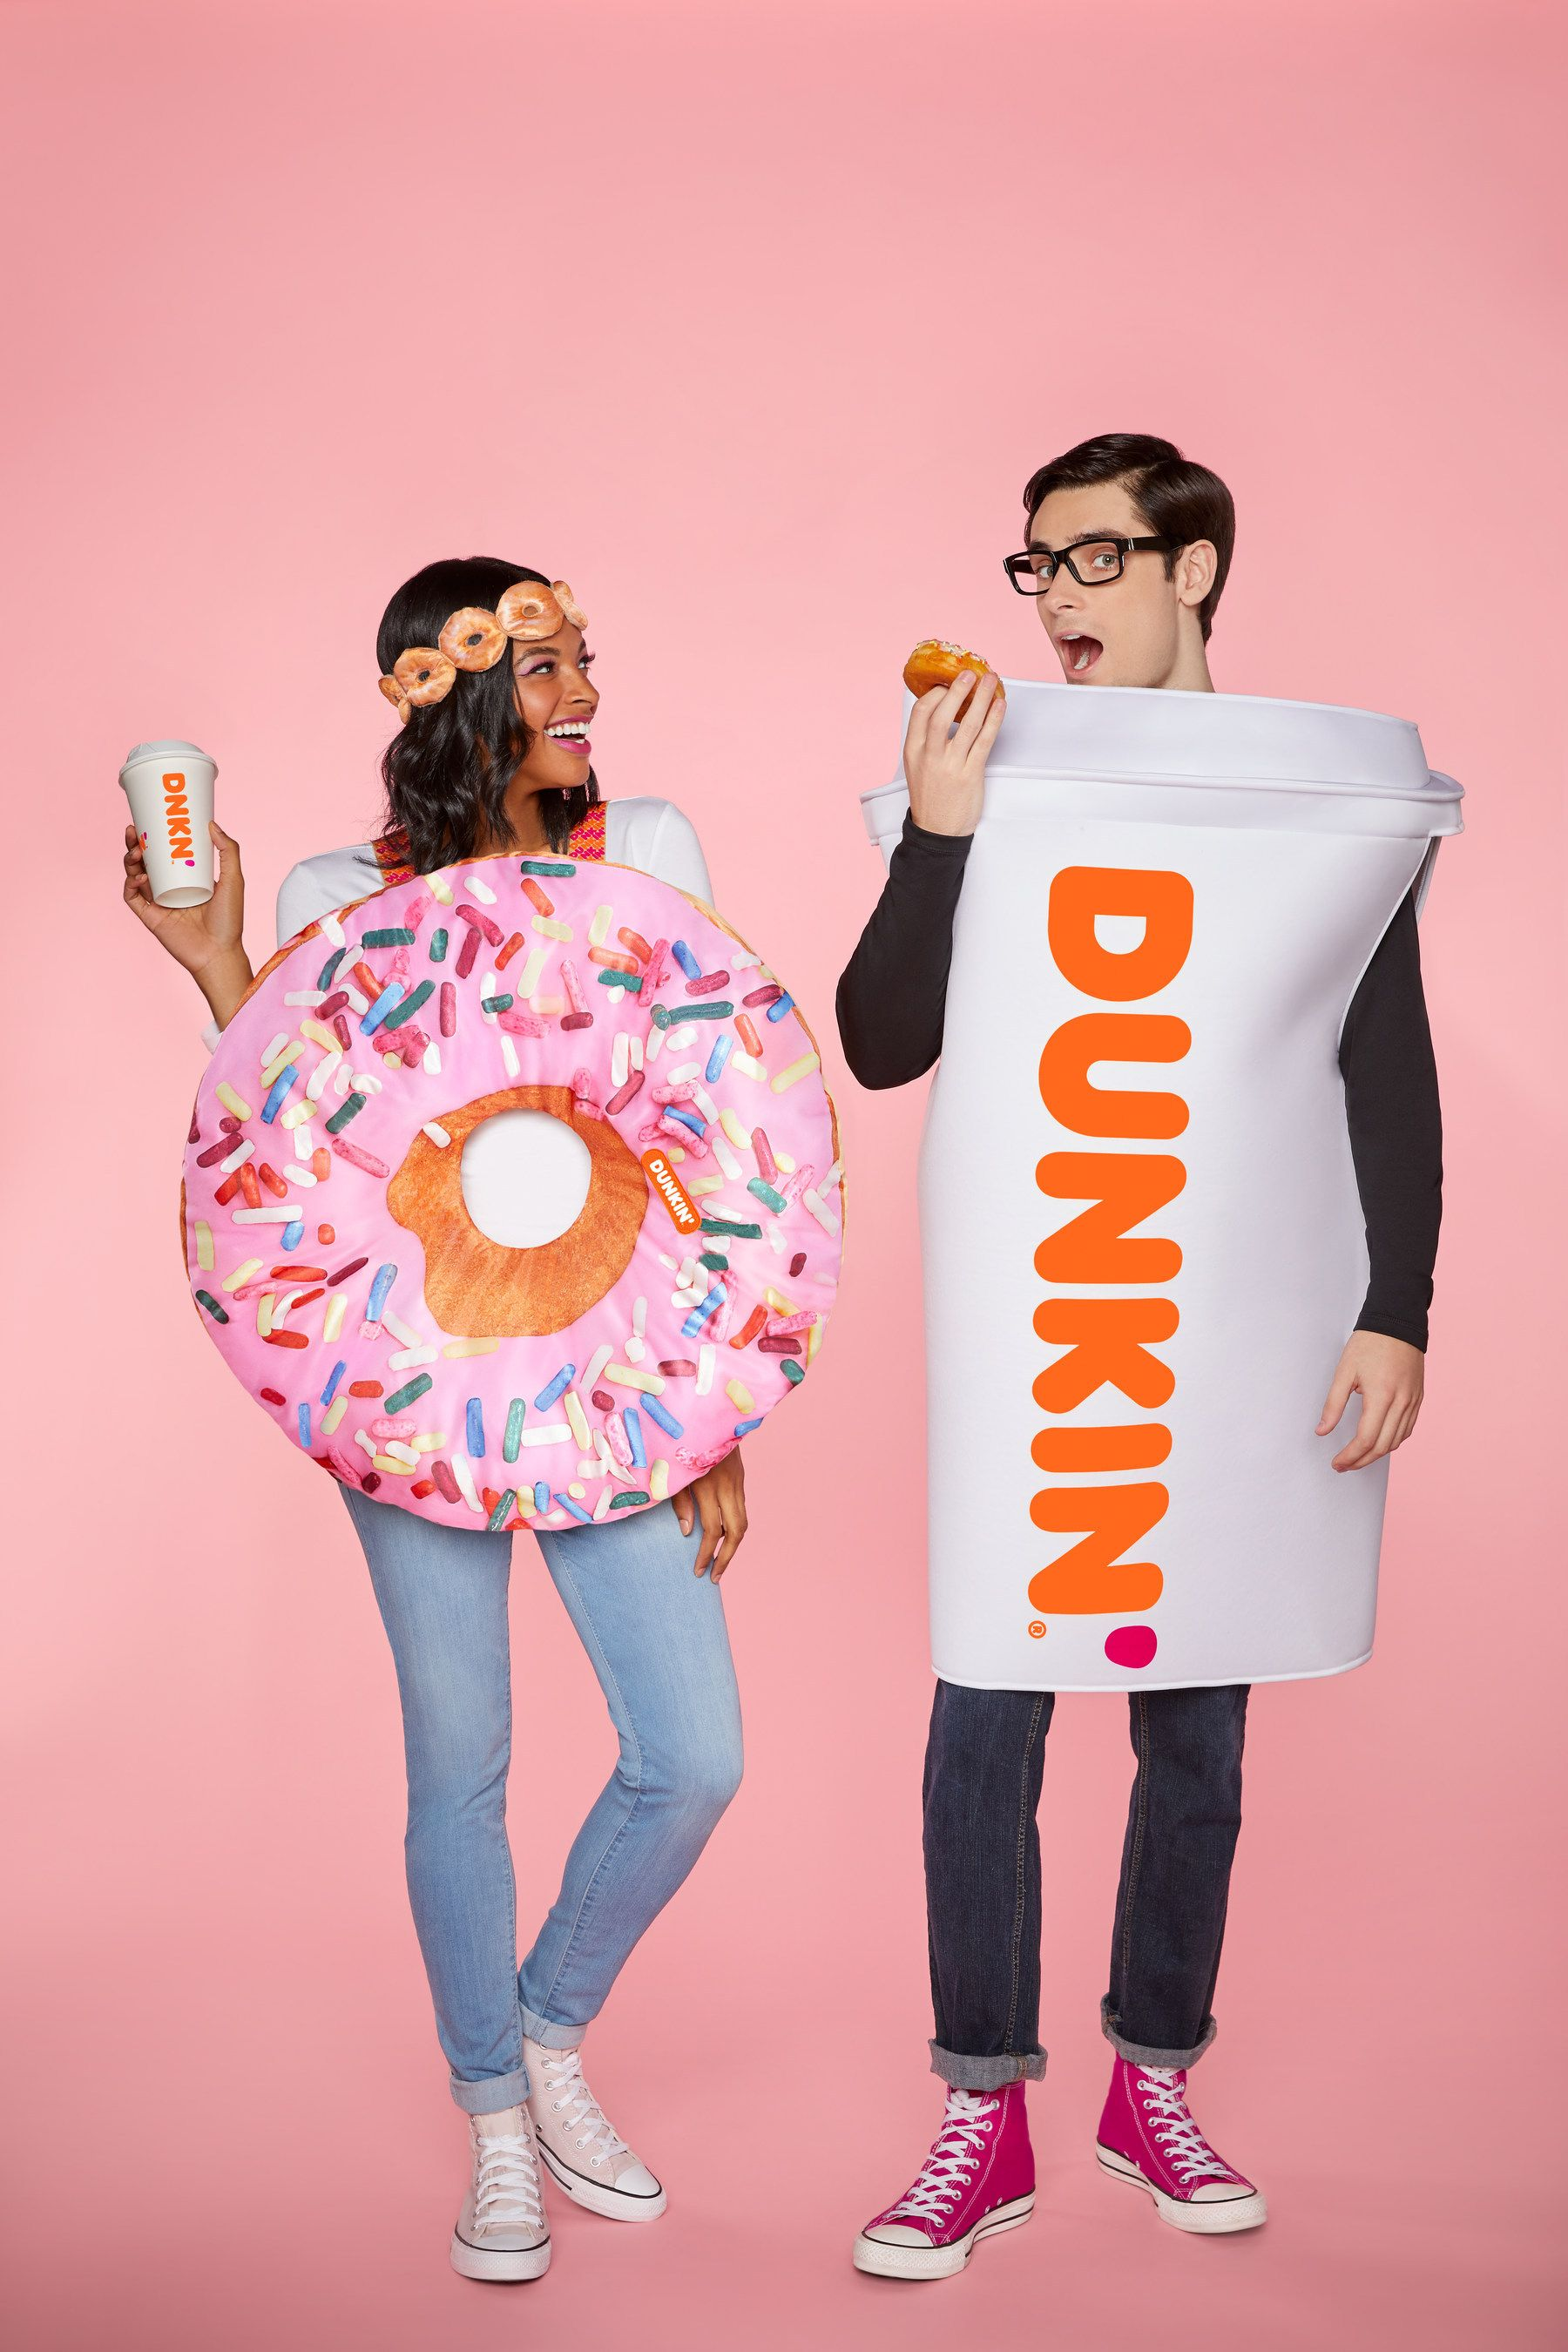 Dunkin Halloween Dress Up 2020 Dunkin' Releases 2020 Halloween Costume Collection